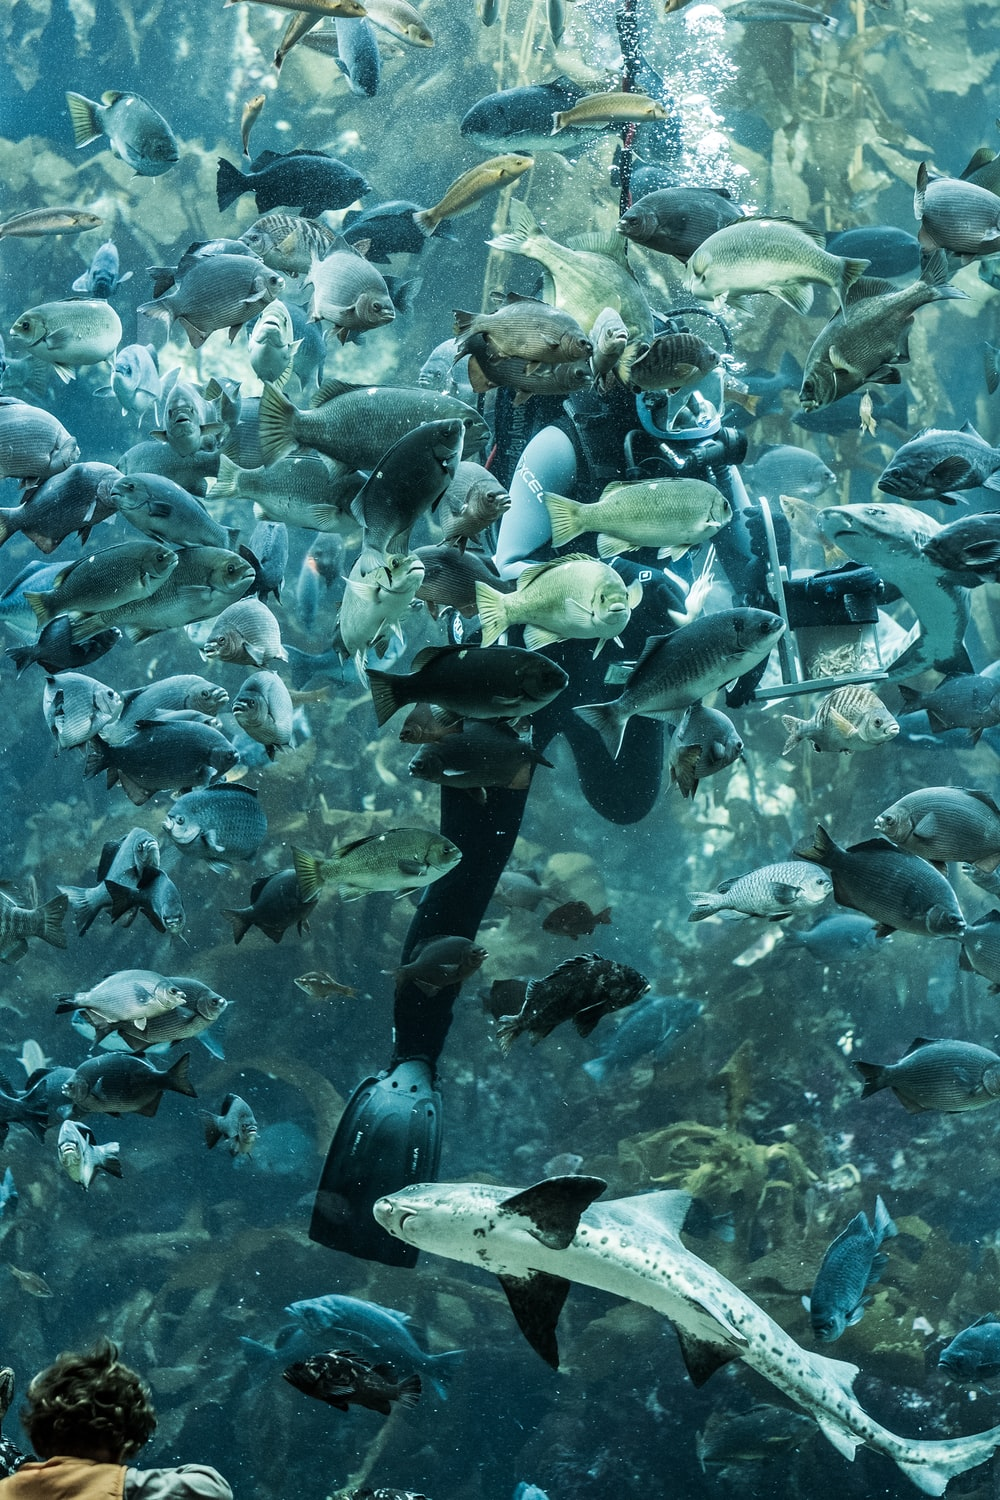 Underwater photo of diver with school of fish